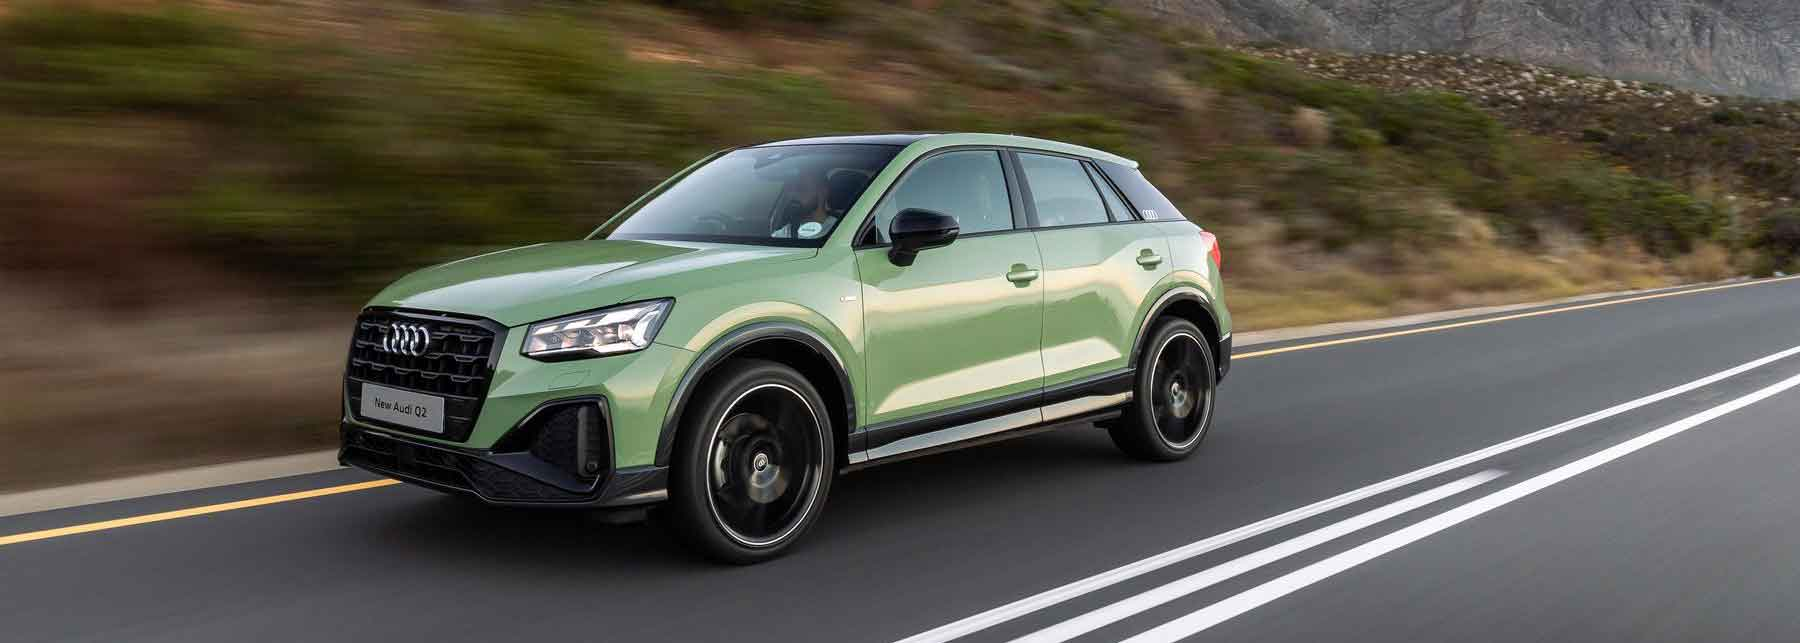 Refreshed Audi Q2 launched